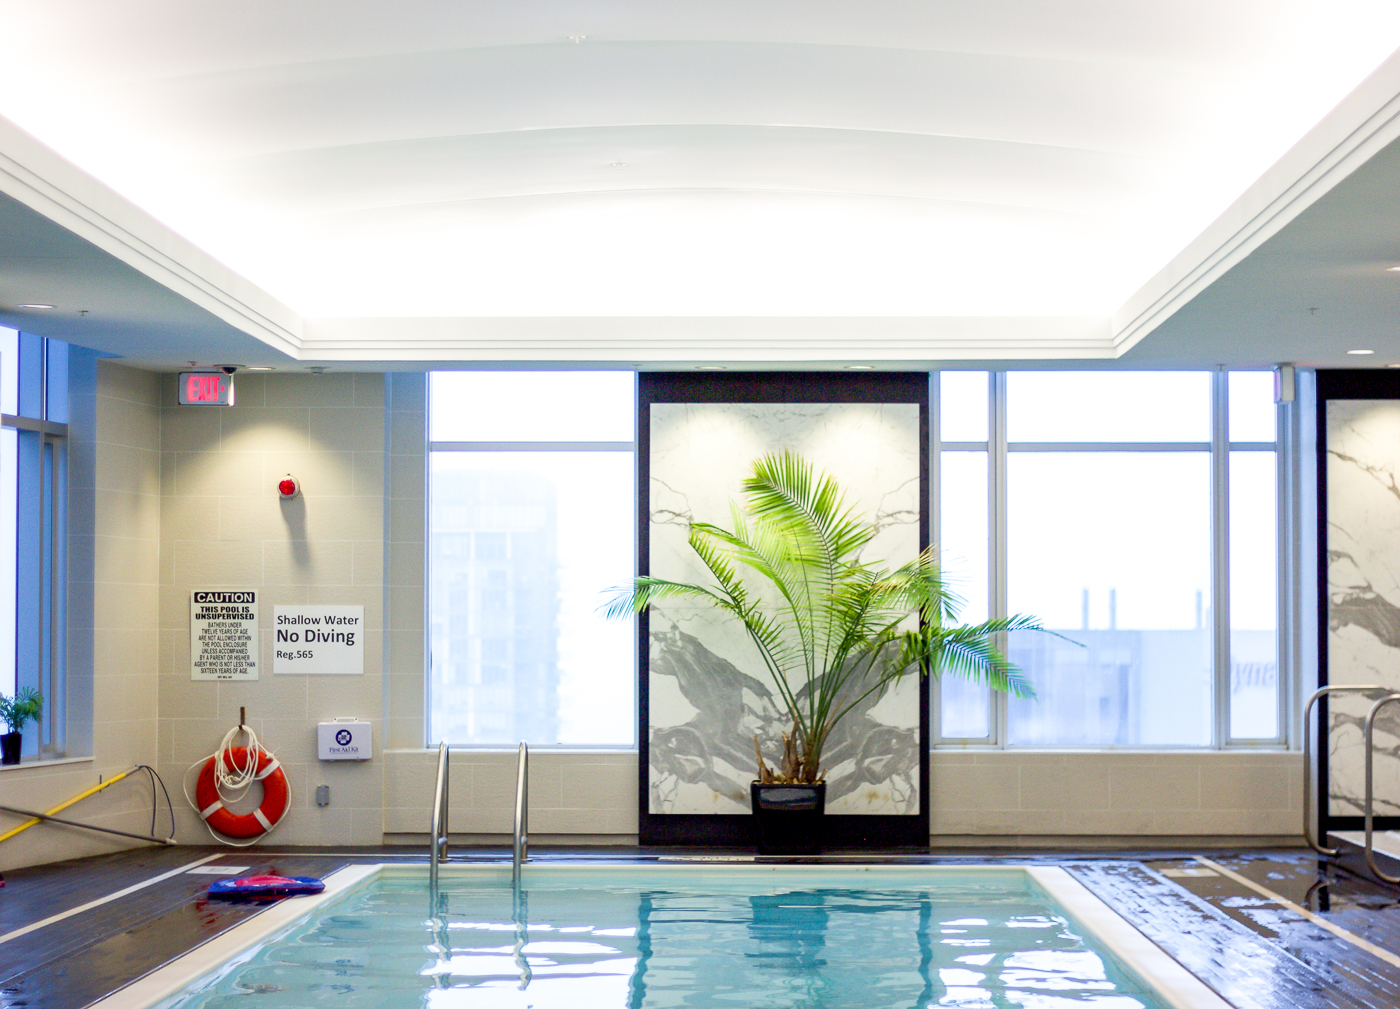 The pool area at the PUREBEAUTY salon and spa at Trump Toronto Hotel